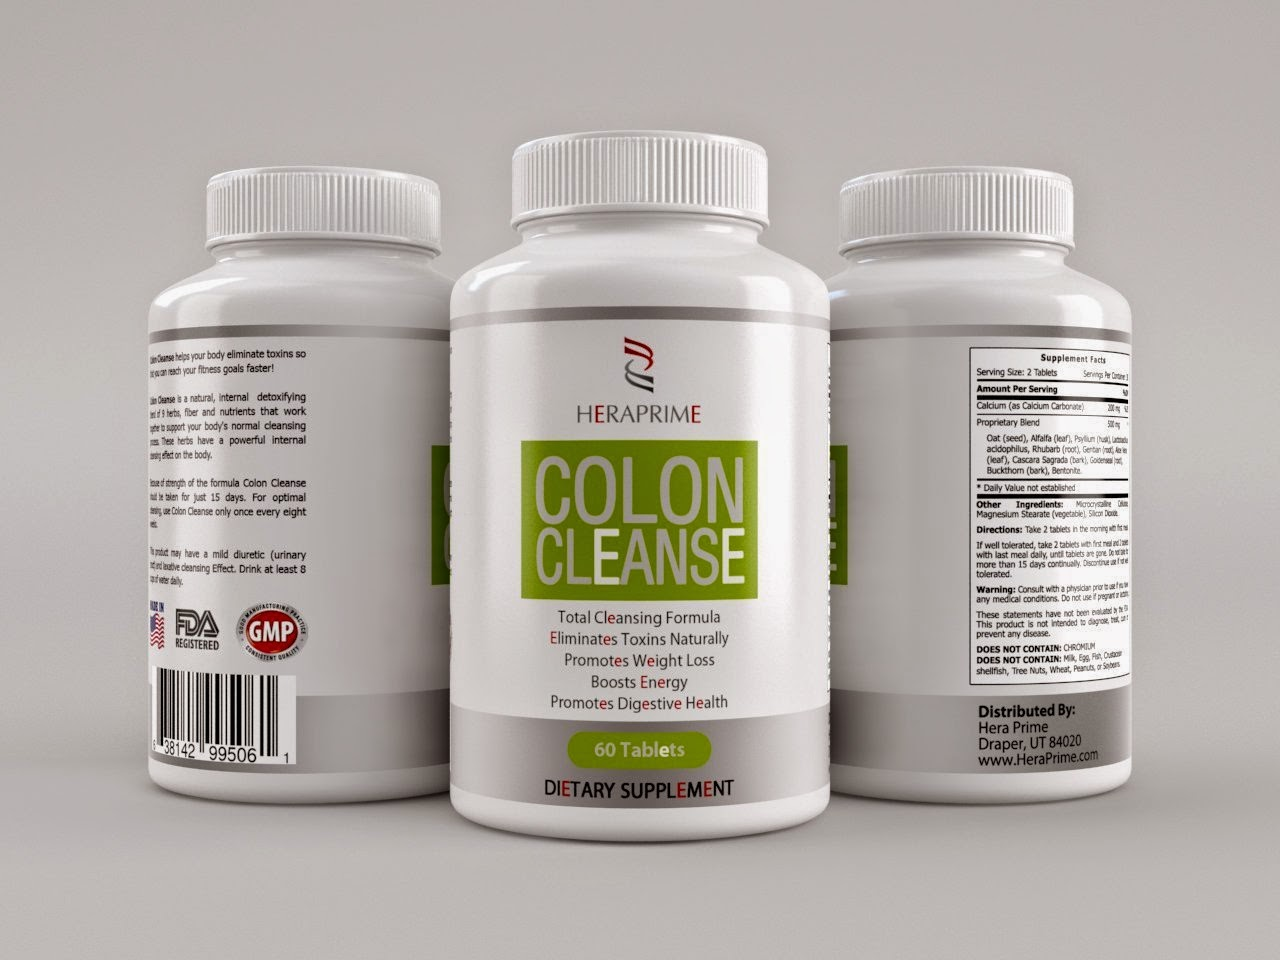 http://www.amazon.com/colon-cleanse-capsules-bloating-complete/dp/b00l6weve2/ref=sr_1_1227?s=hpc&ie=utf8&qid=1403447525&sr=1-1227&keywords=colon+cleanse